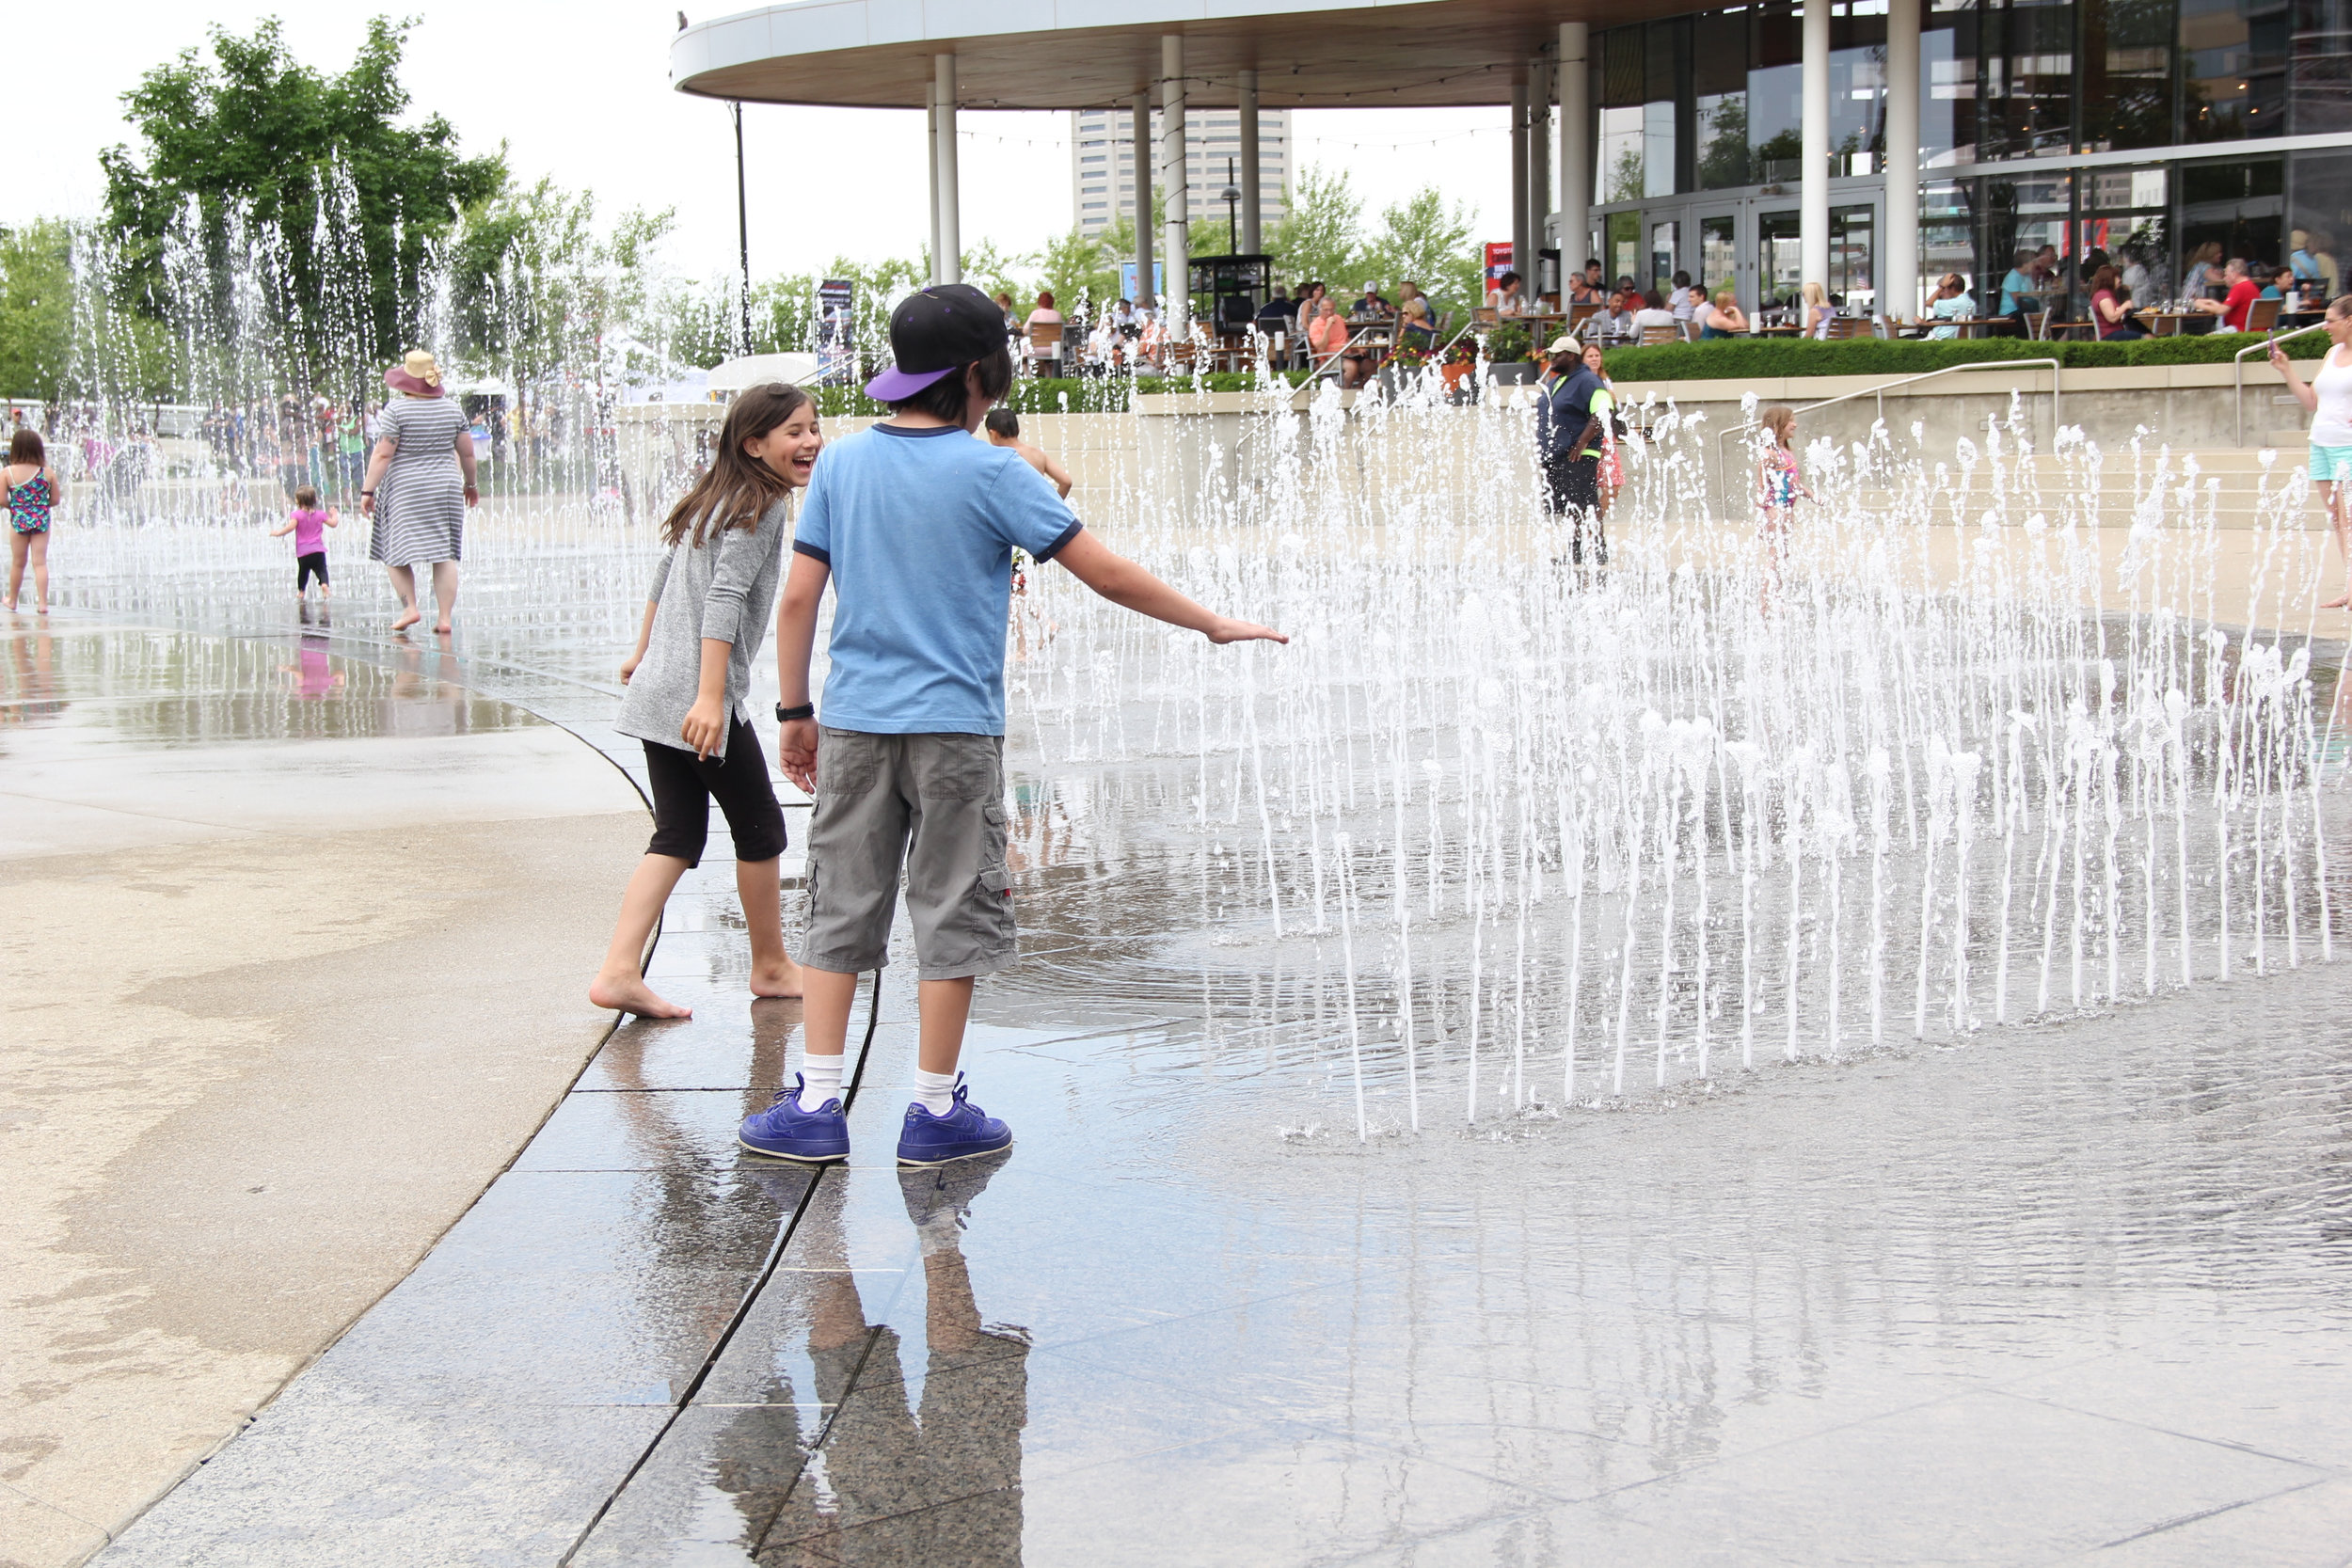 Some of our members decided to cool off by running through the fountains at the Columbus Arts Festival last Friday.